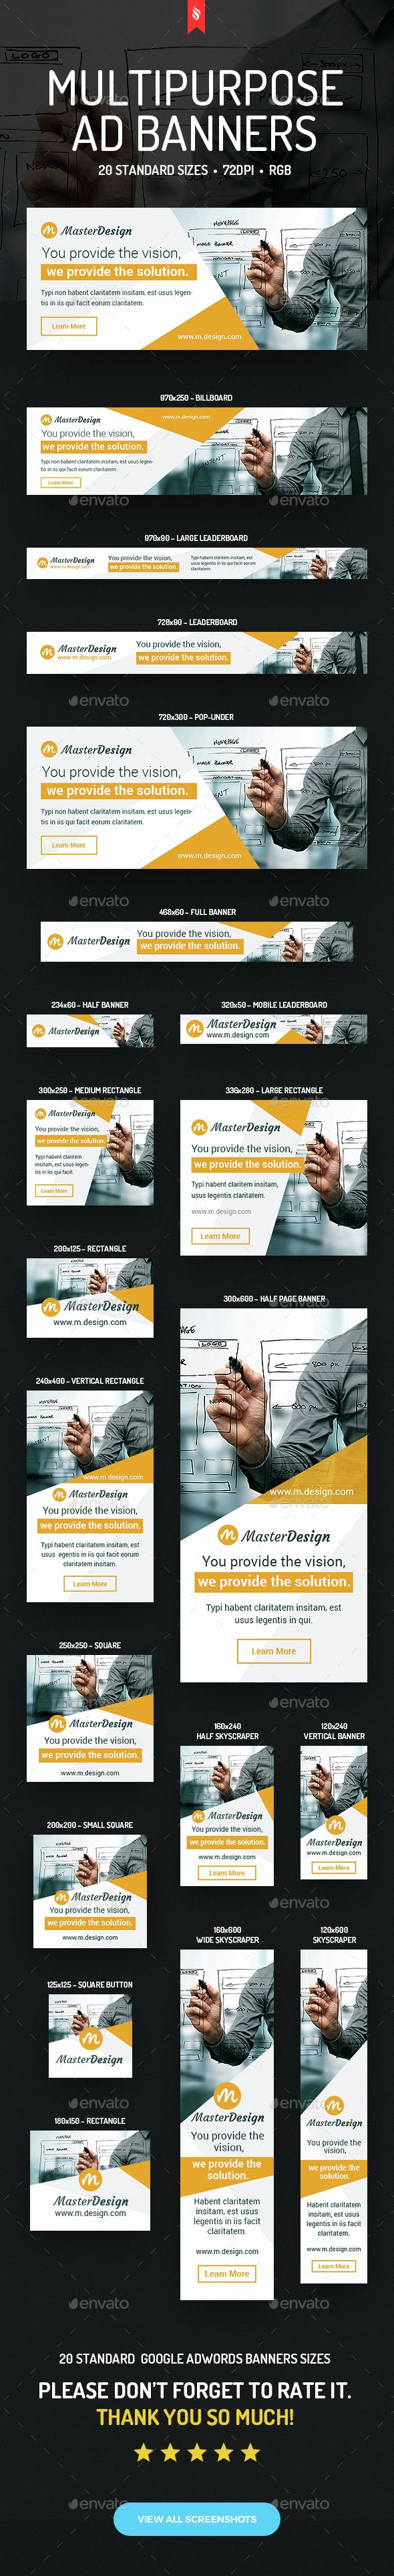 Master Design - Multipurpose Web Banners Template PSD #ad #promotion Download: http://graphicriver.net/item/master-design-multipurpose-ad-banners/14544733?ref=ksioks